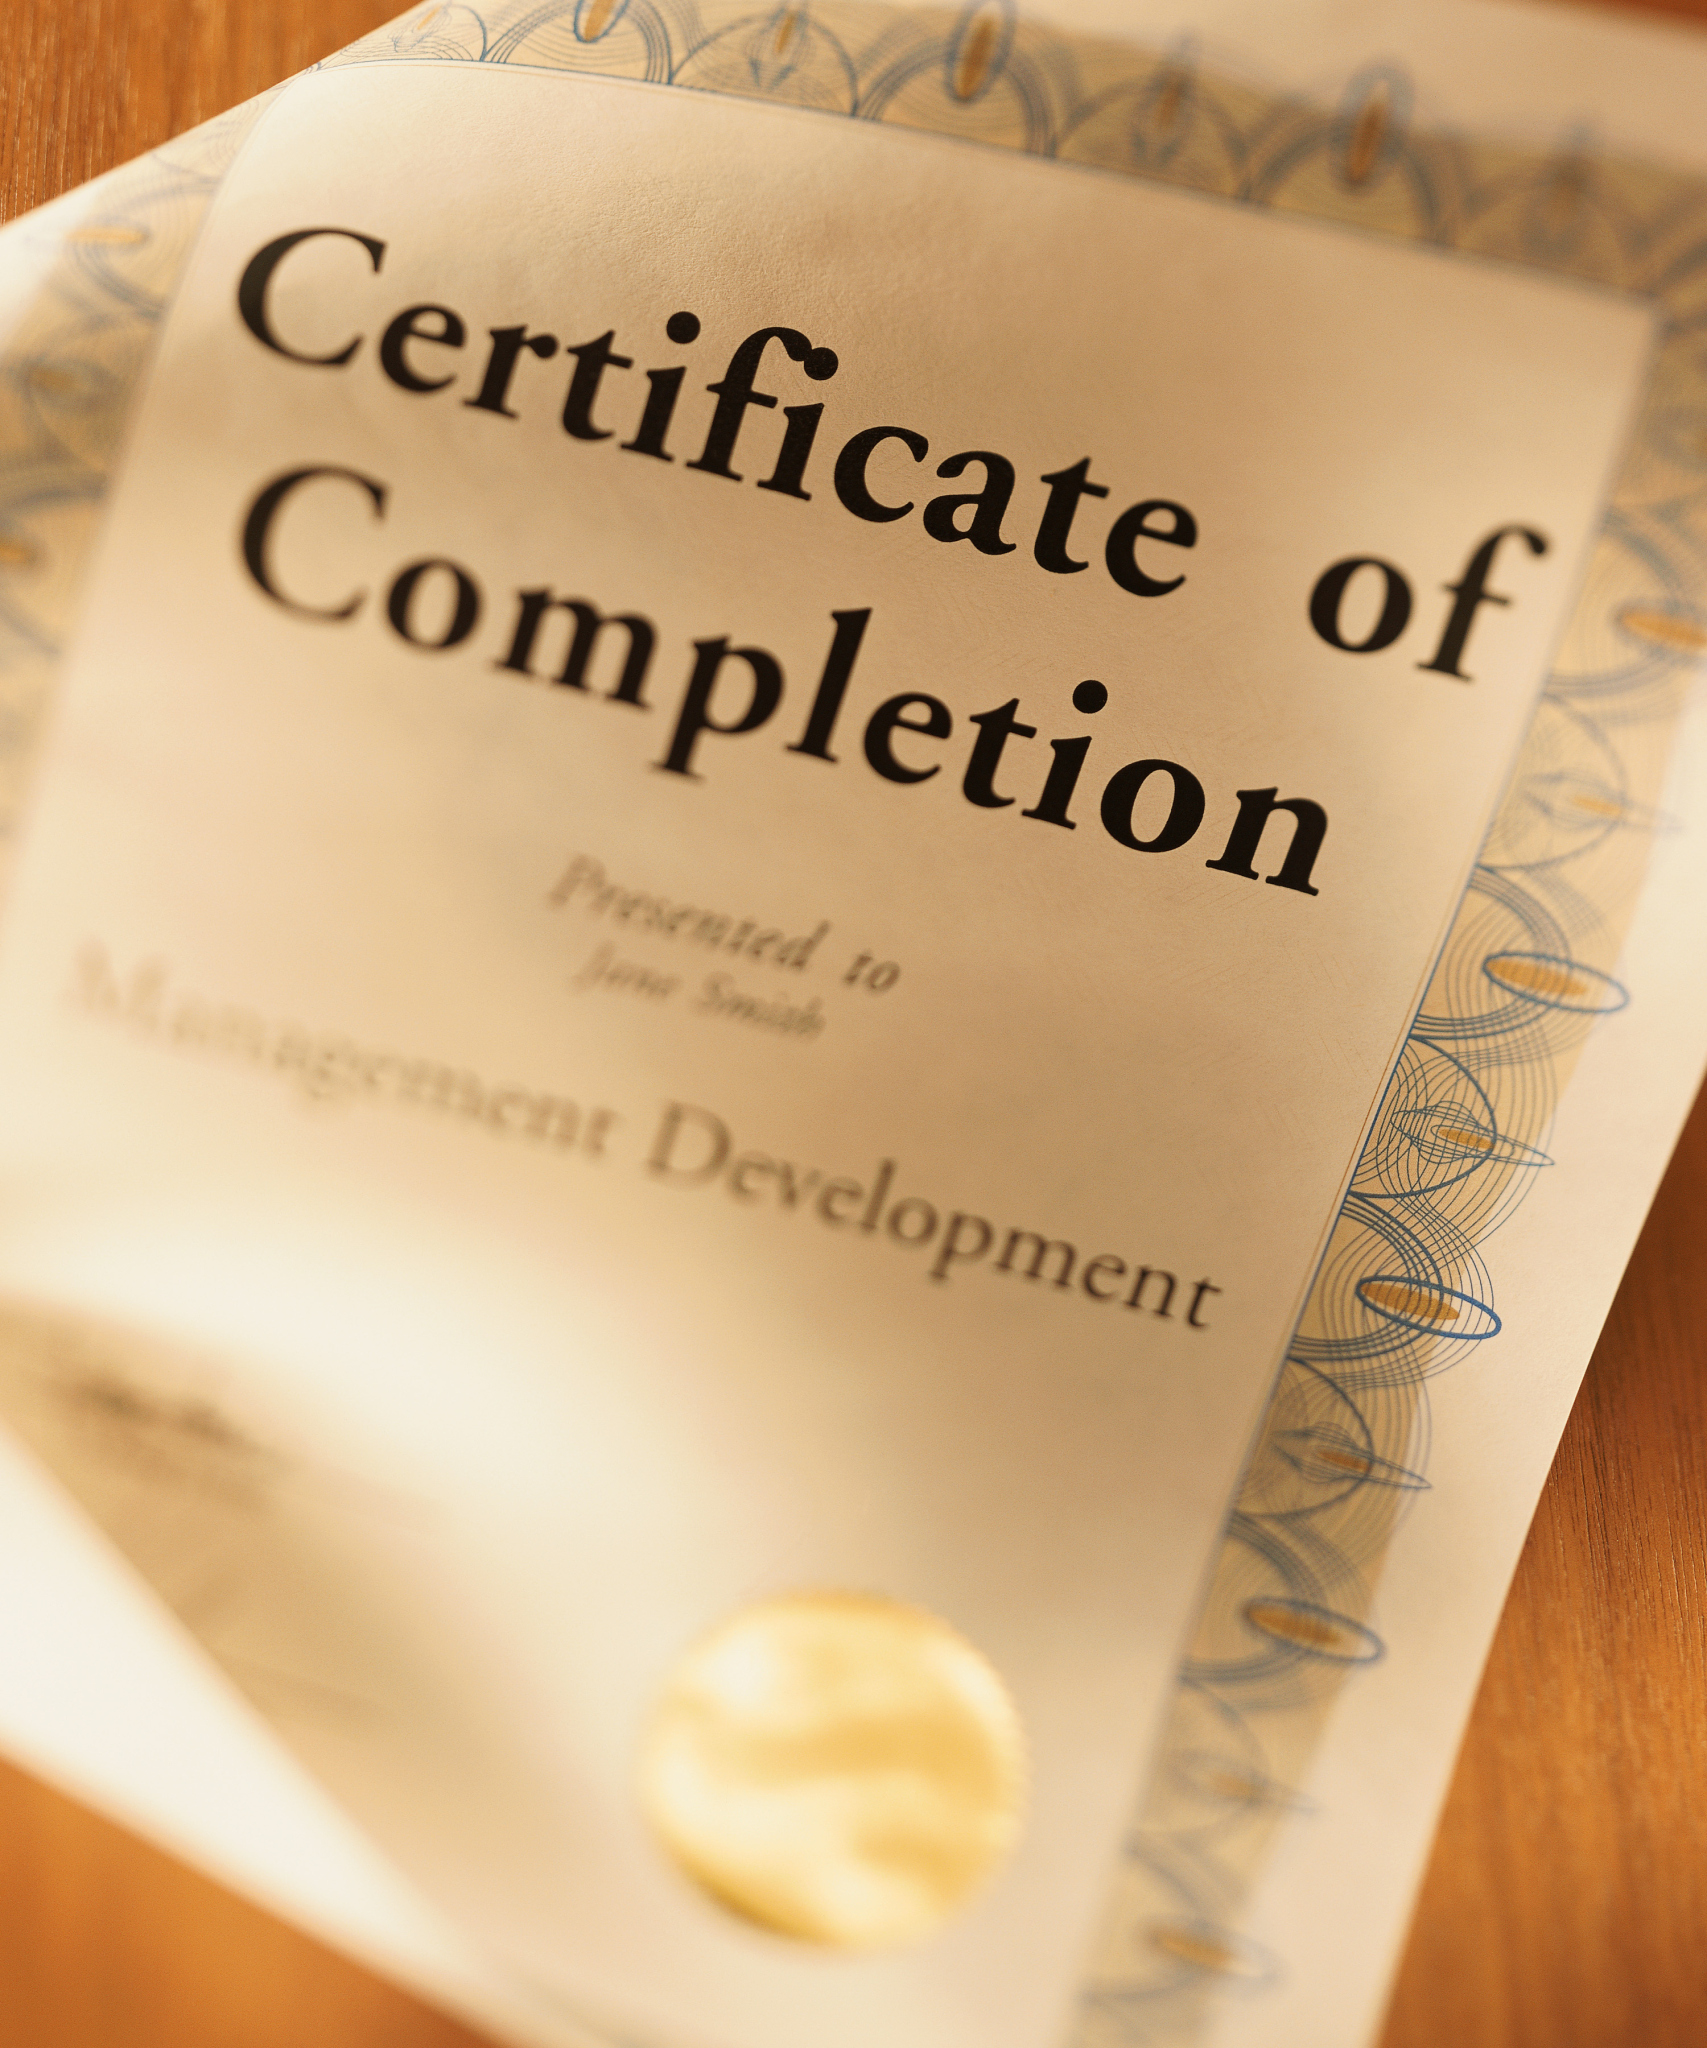 How To Put Certifications On A Resume